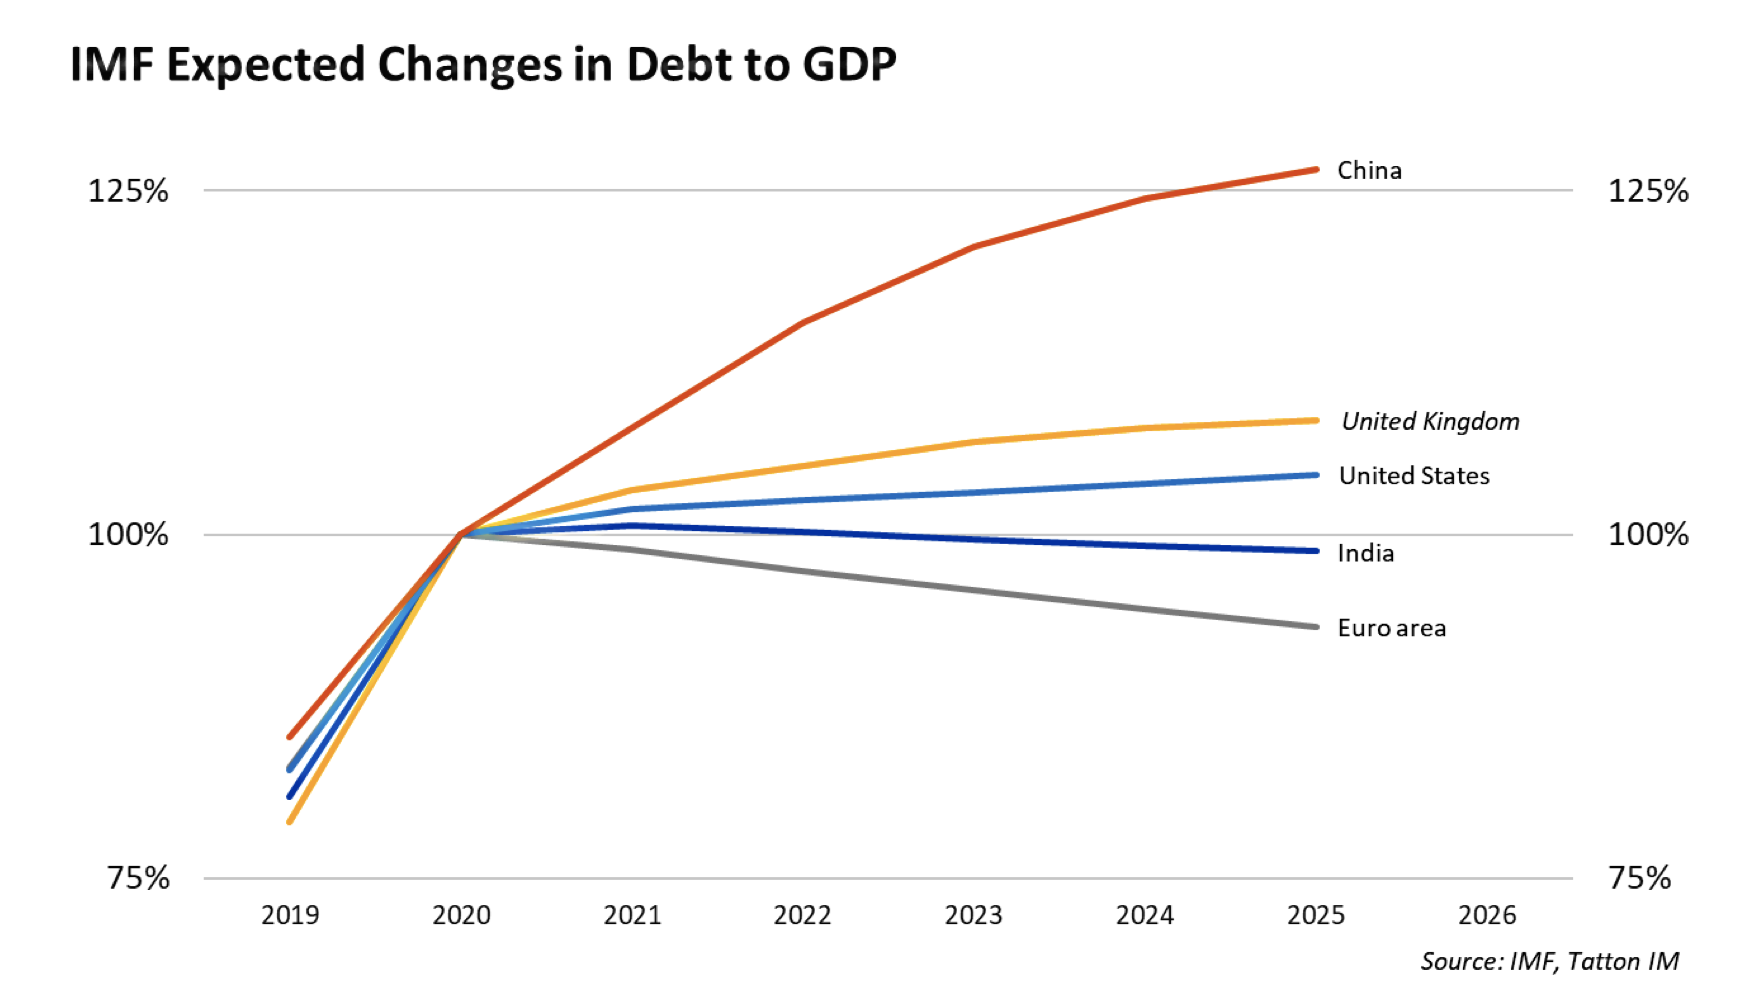 IMF Expected Changes in Debt to GDP